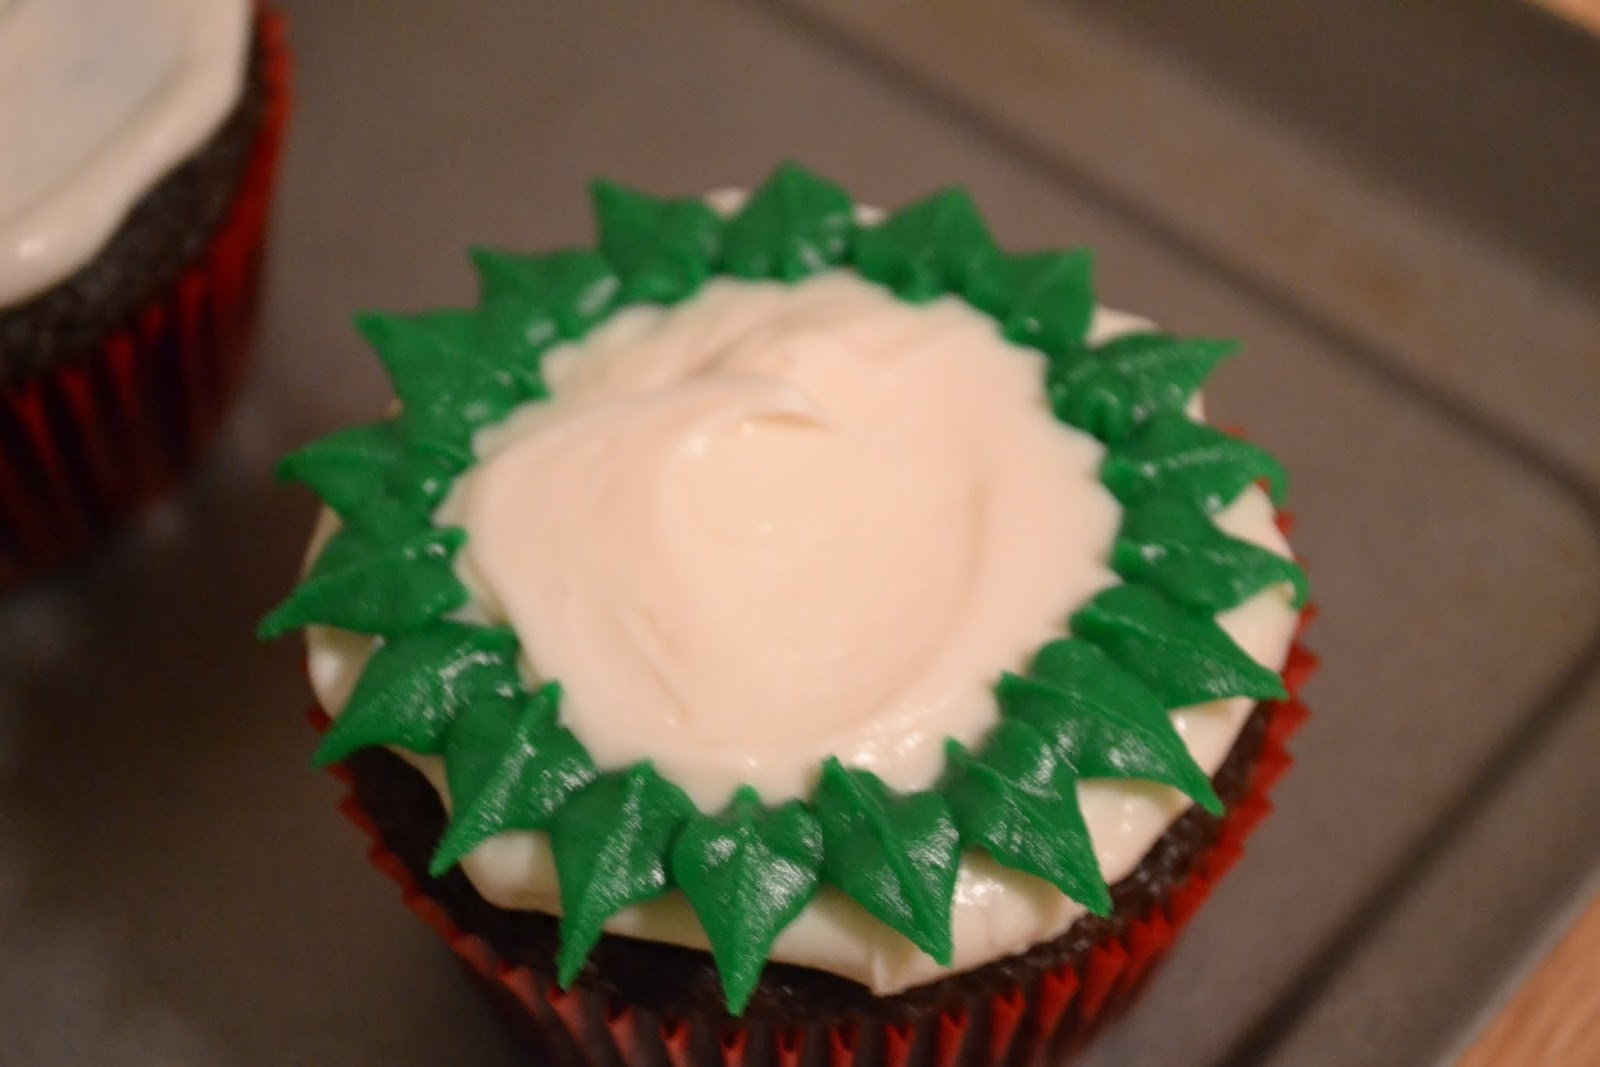 Cake Decorating Leaves : Much Ado About Somethin: Cake Decorating How-To: Buttercream Christmas Wreaths